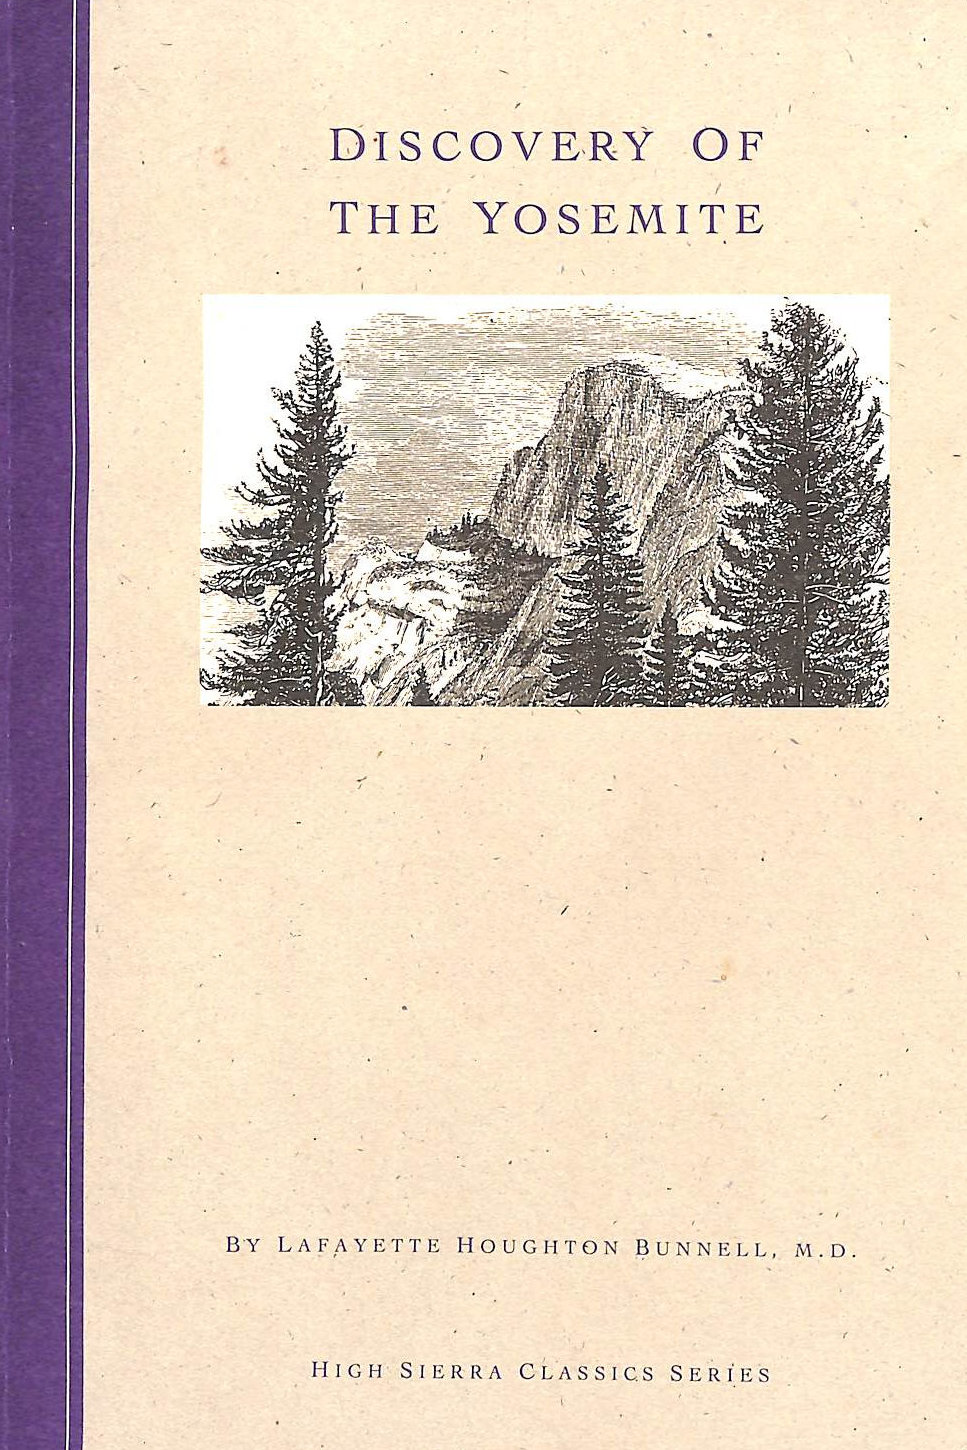 BUNNELL, LAFAYETTE H.; JOHNSTON, HAND [DESIGNER]; MEDLEY, STEVEN P. [EDITOR]; - Discovery of the Yosemite and the Indian War of 1851 Which Led to That Event (High Sierra Classics Series)